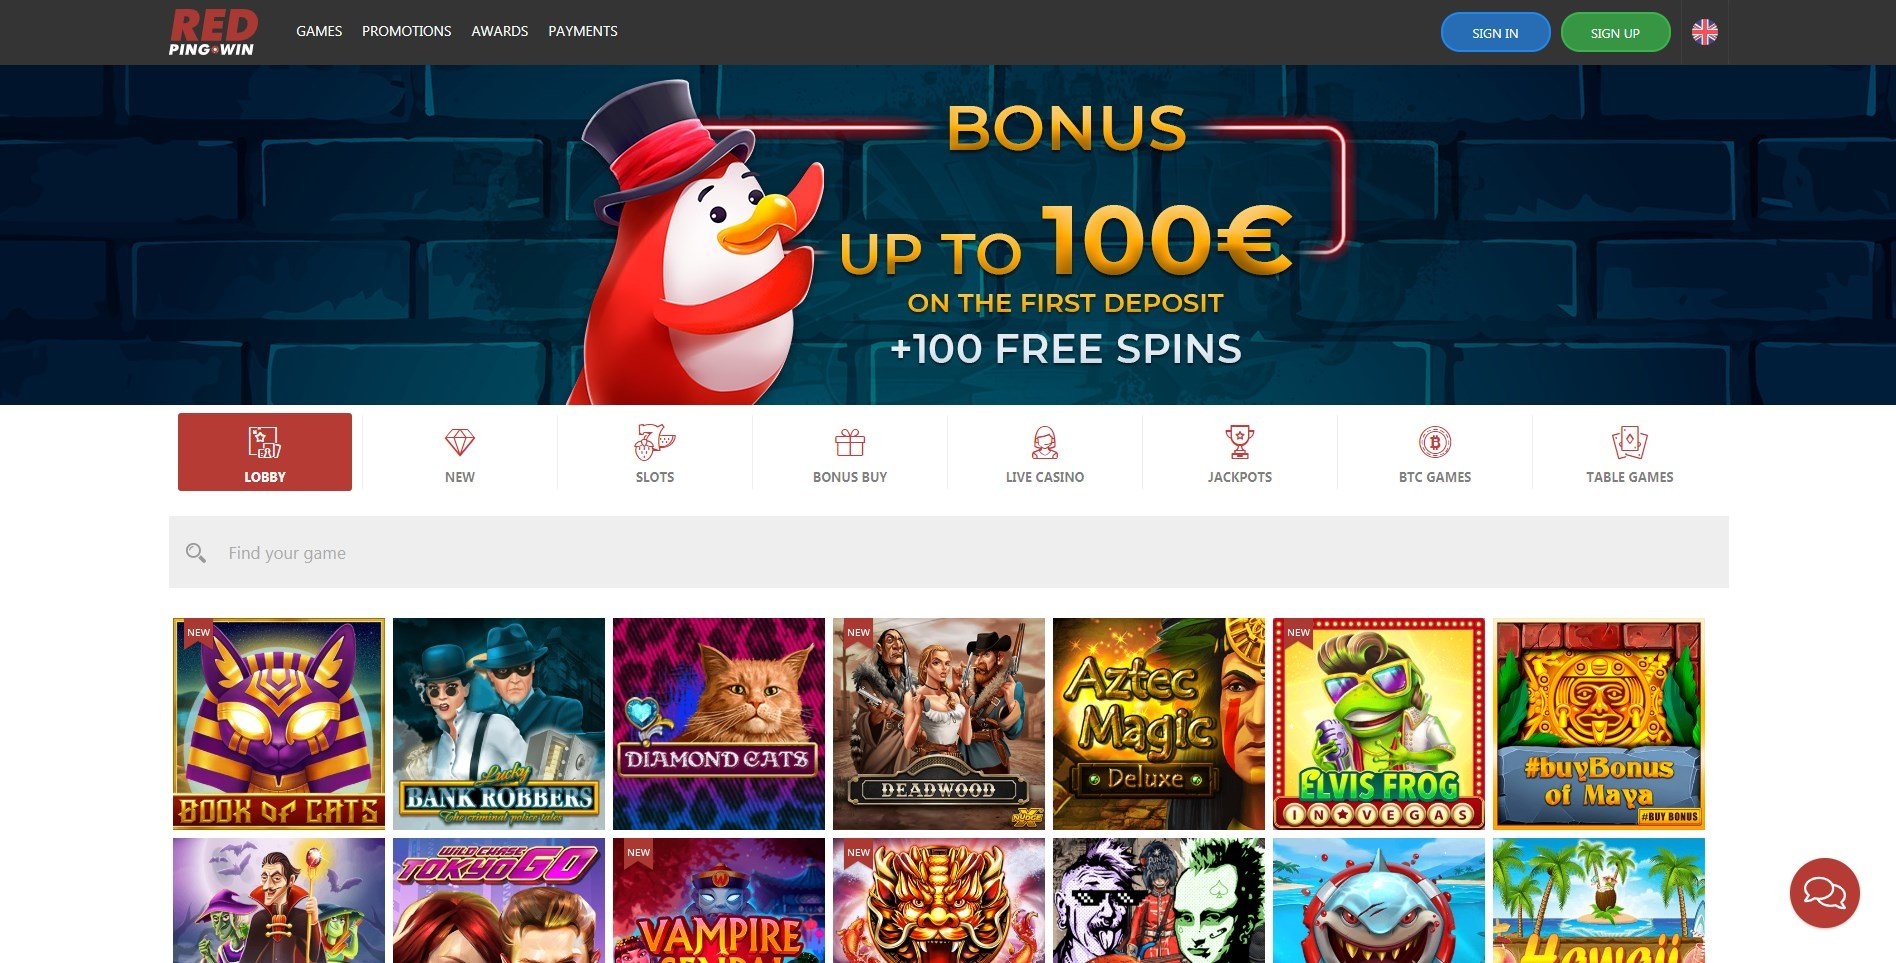 Red Ping Win Casino